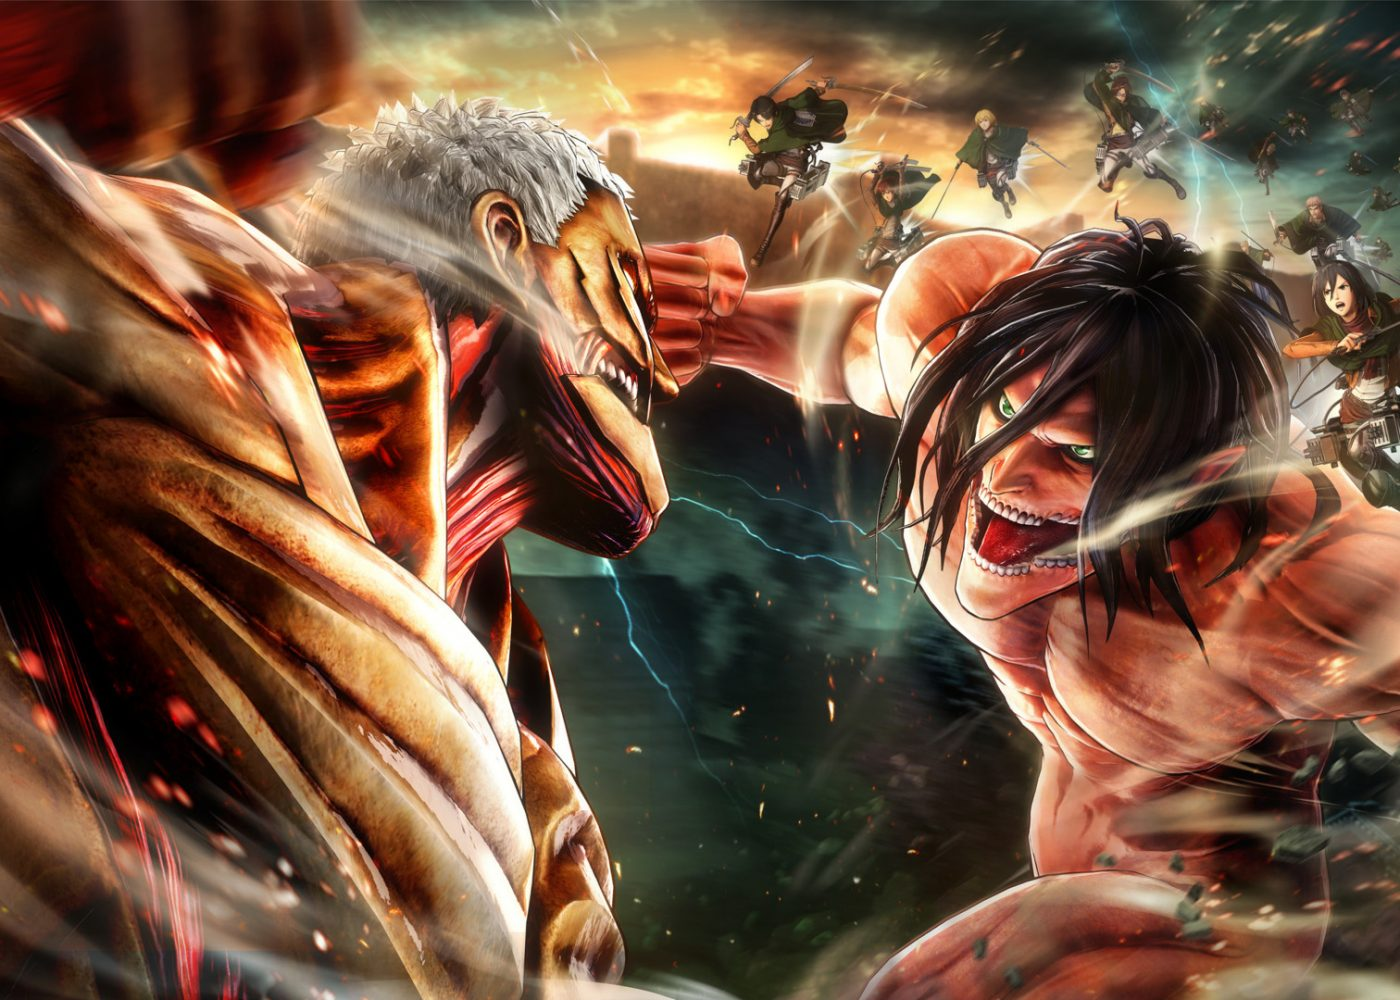 Kenali Berbagai Monster Mengerikan Di Attack On Titan Greenscene